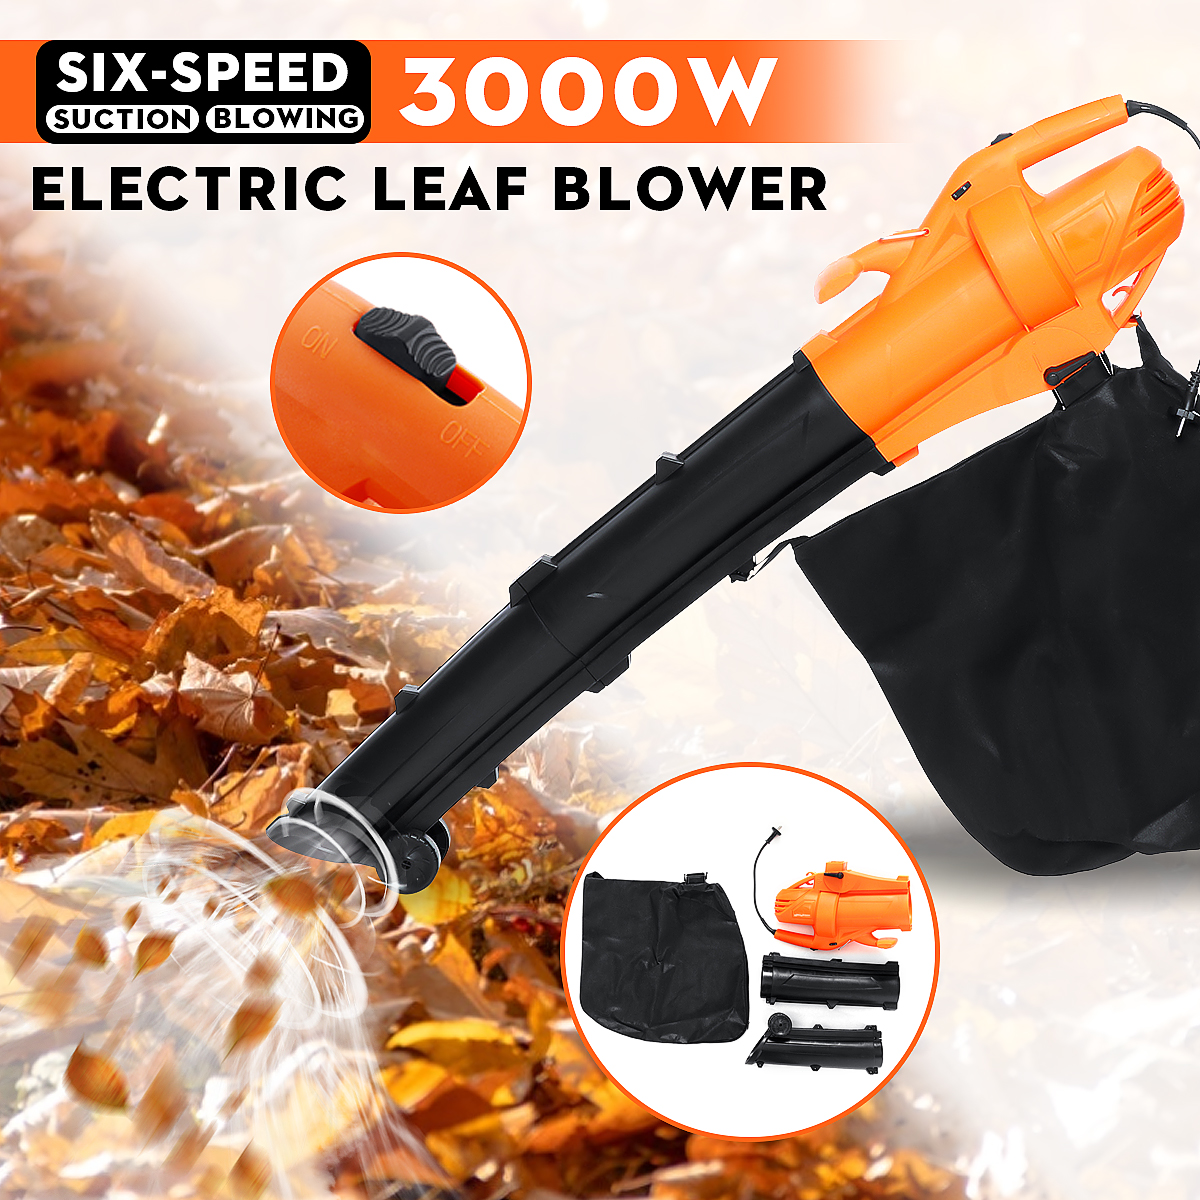 3000W Leaf Pulverizer High Powers 6 Speed Control Blowing Dual-use Electric Blower With 30L Large Capacity Storage Bag Garden